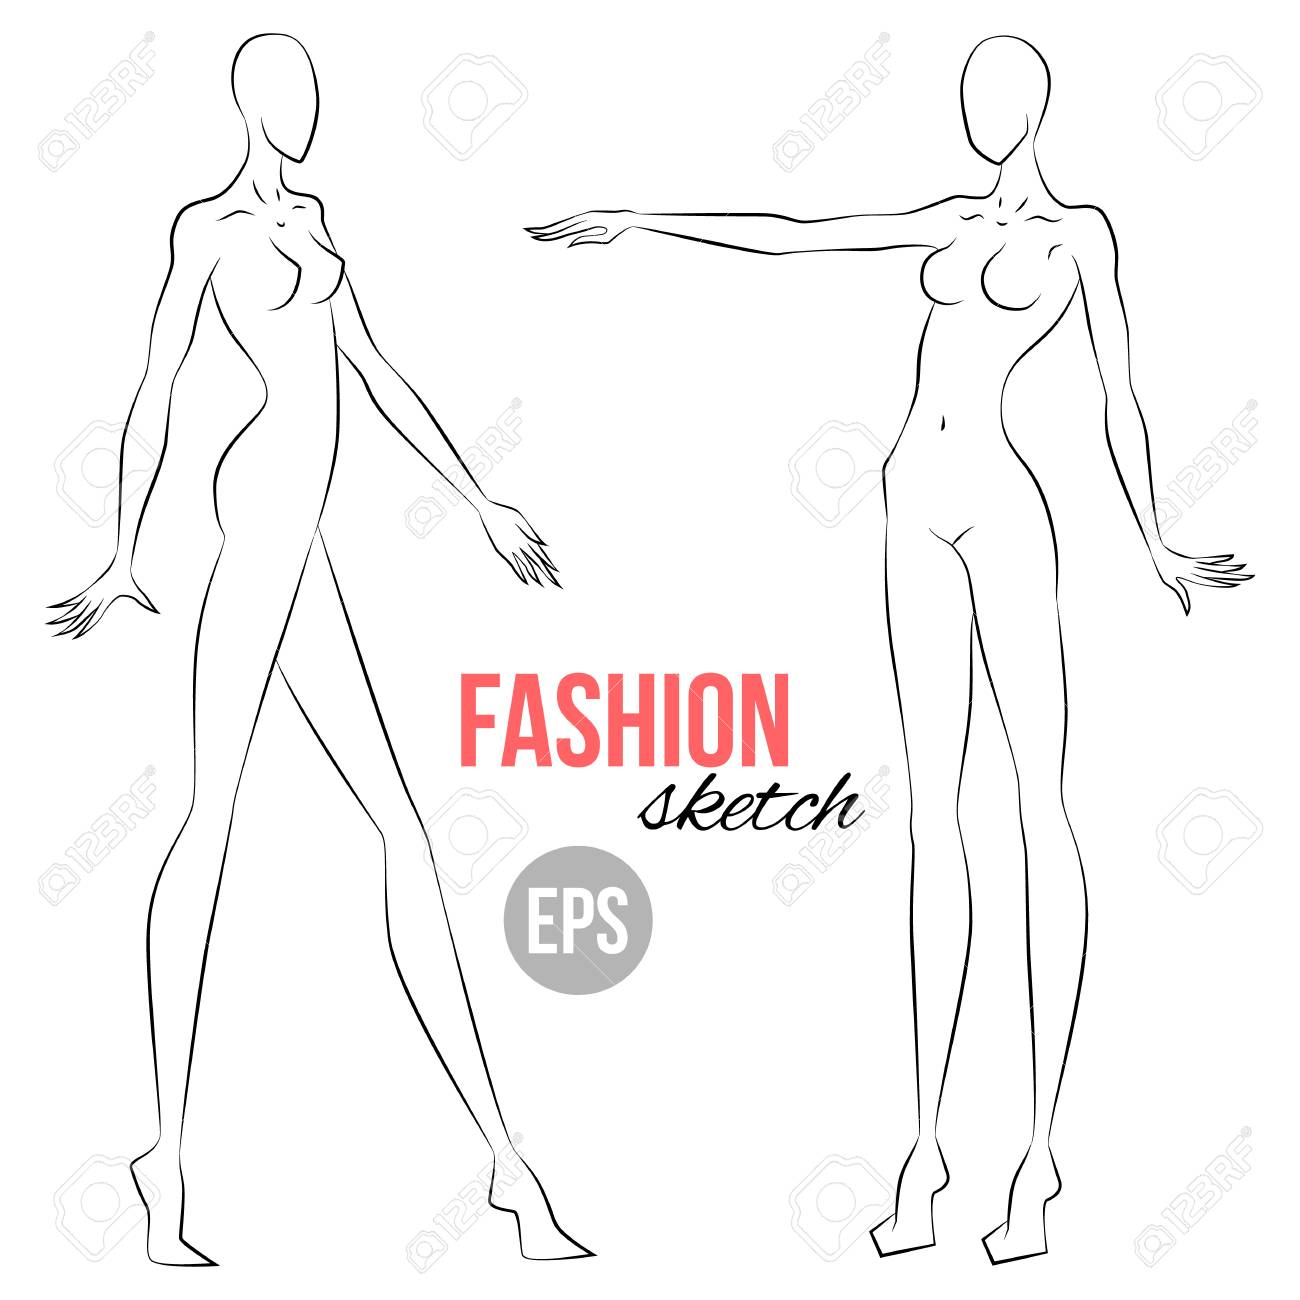 Woman S Figure Sketch Different Poses Template For Drawing Royalty Free Cliparts Vectors And Stock Illustration Image 97069525